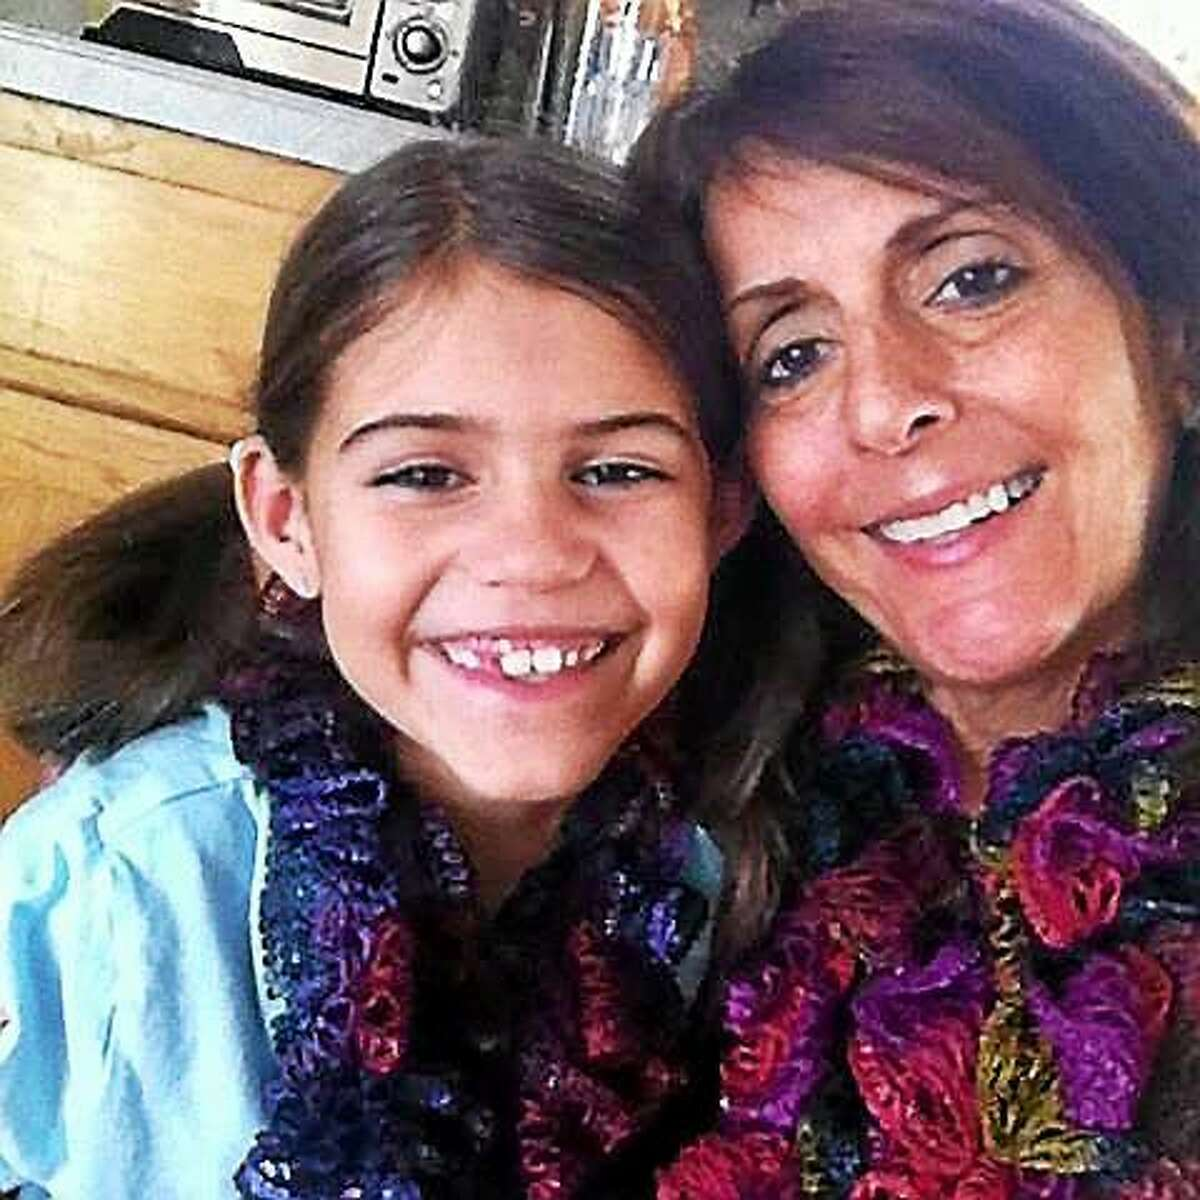 Middletown resident Trish Ghezzi and daughter, Jalena, 9.